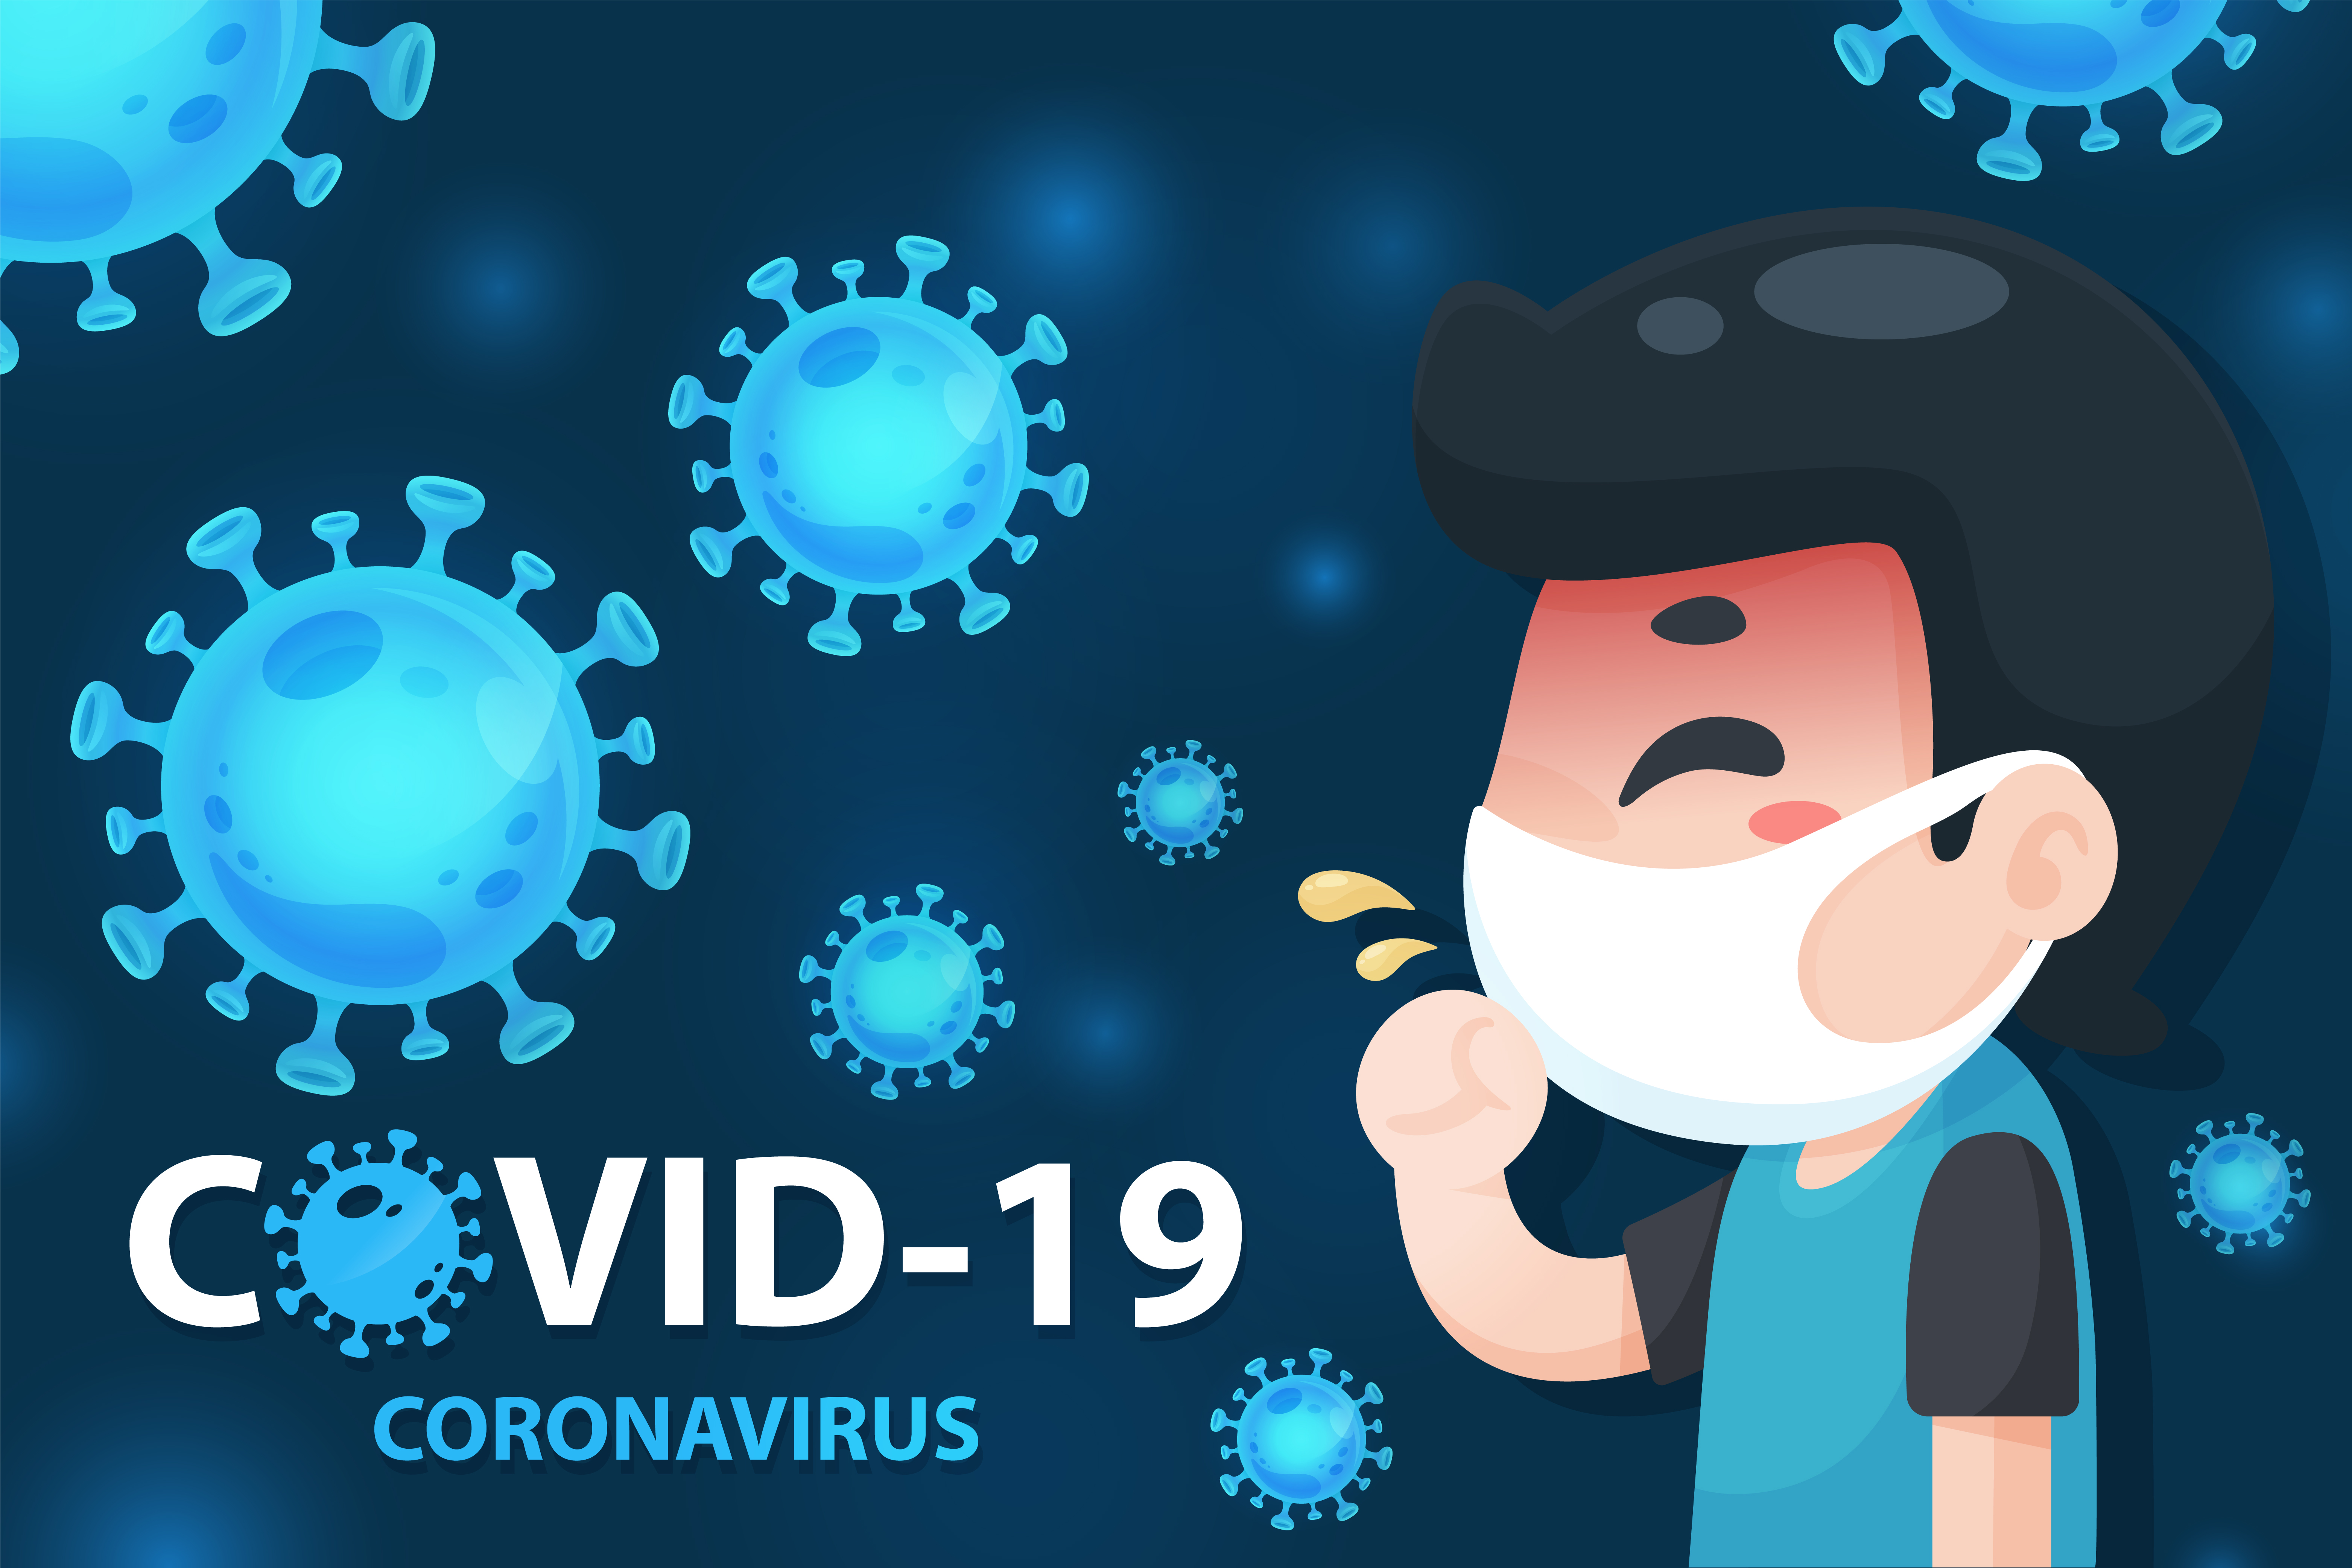 Covid 19 Poster With Sick Cartoon Man Download Free